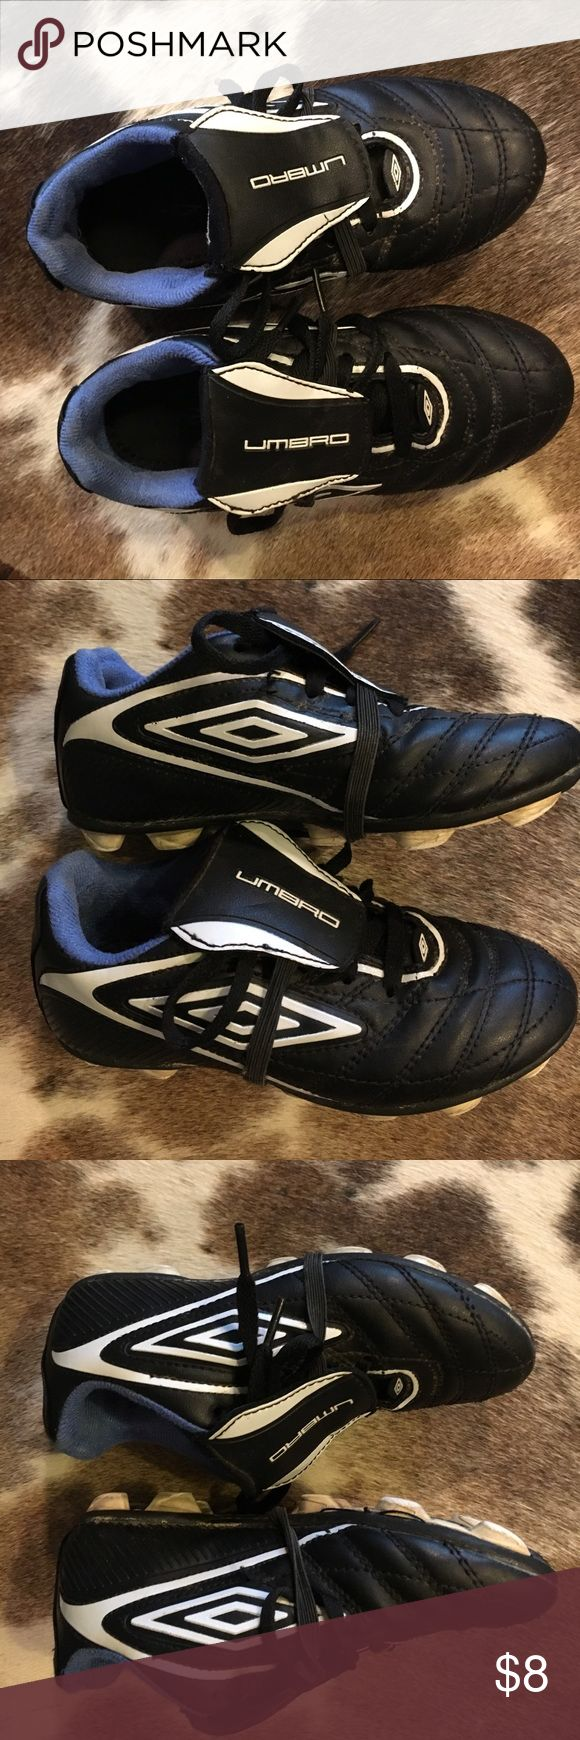 Umbro kids soccer shoes. Unisex Good used condition,these have been washed so soles will be as pictured. One scuff mark on toe of left shoe. They also have straps to hold shoelaces down. Umbro Shoes Sneakers